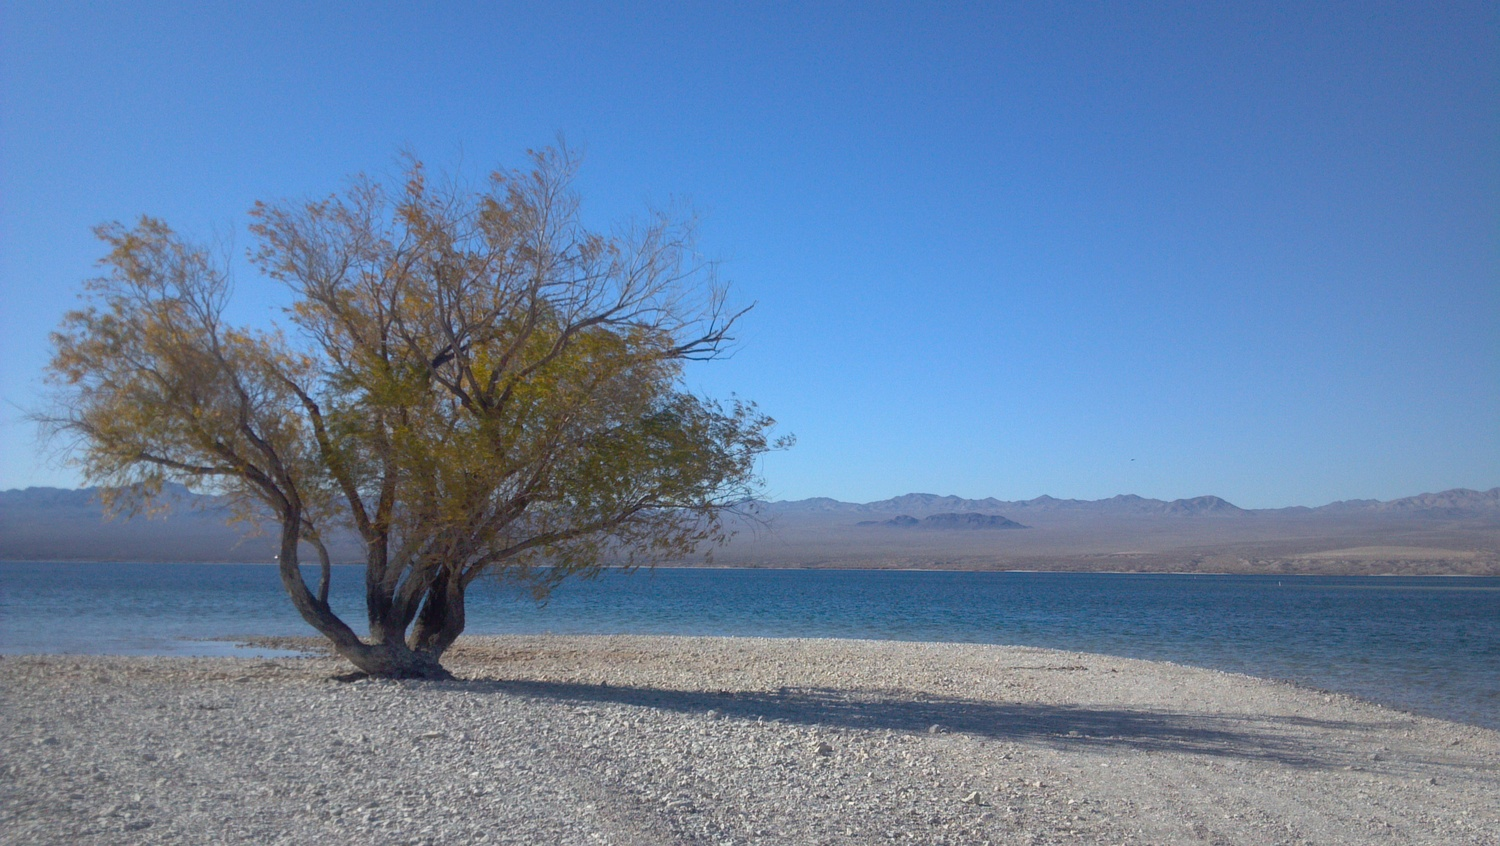 Looking across Lake Mohave to the Nevada side. Photo Larry Atkins